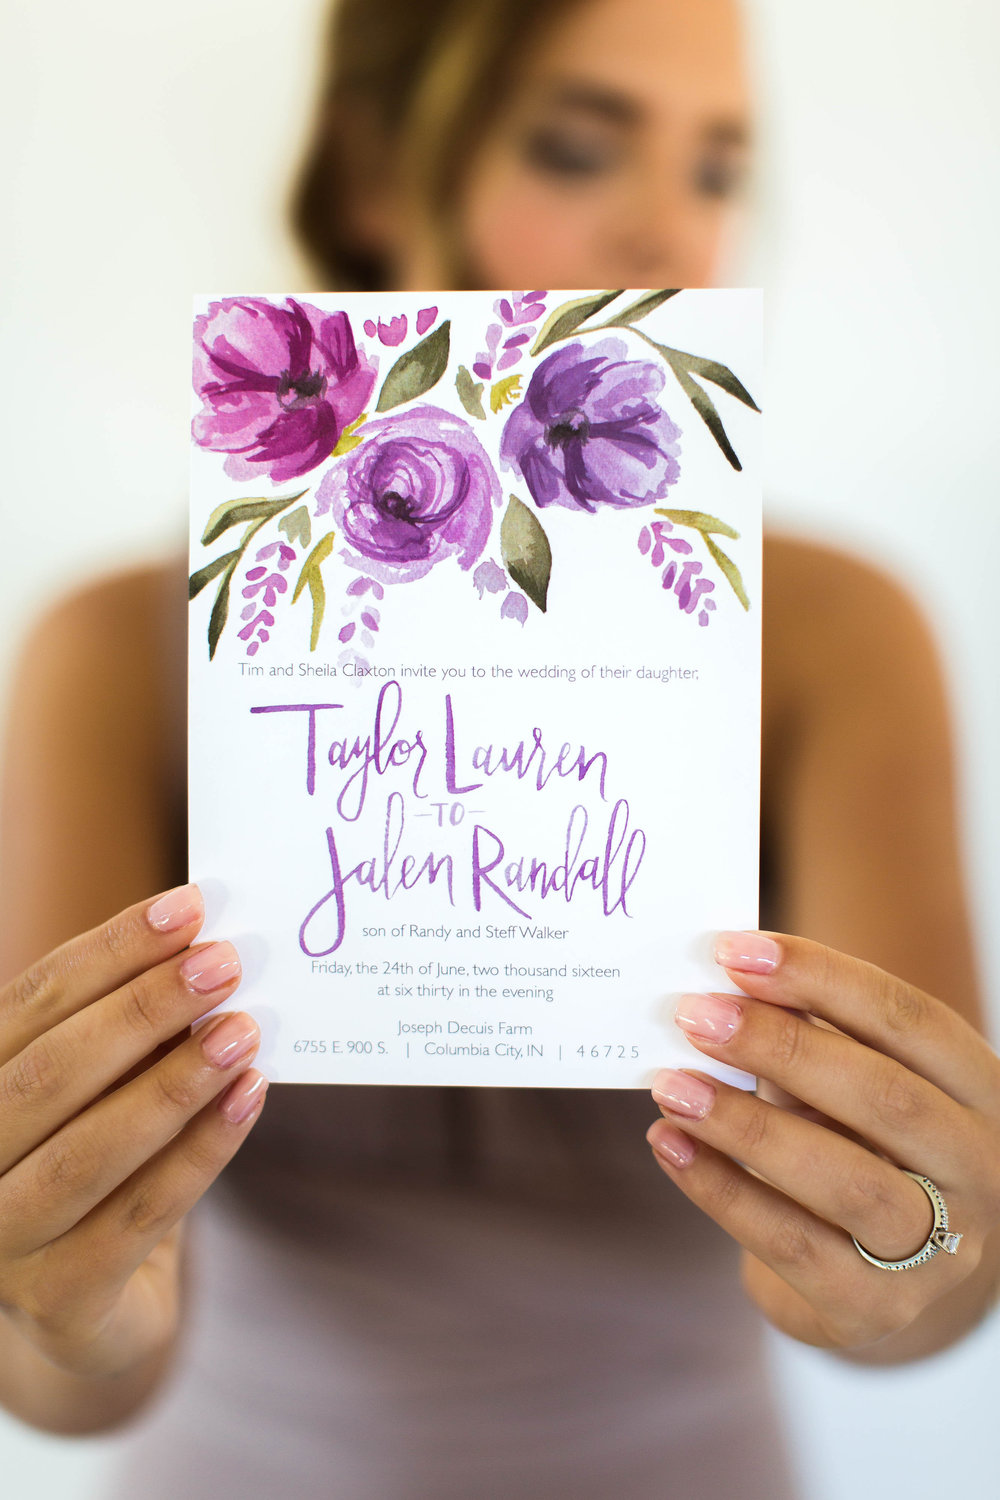 Shades of lavender amethyst violet wine watercolor wedding invitation by Sommer Letter Co.